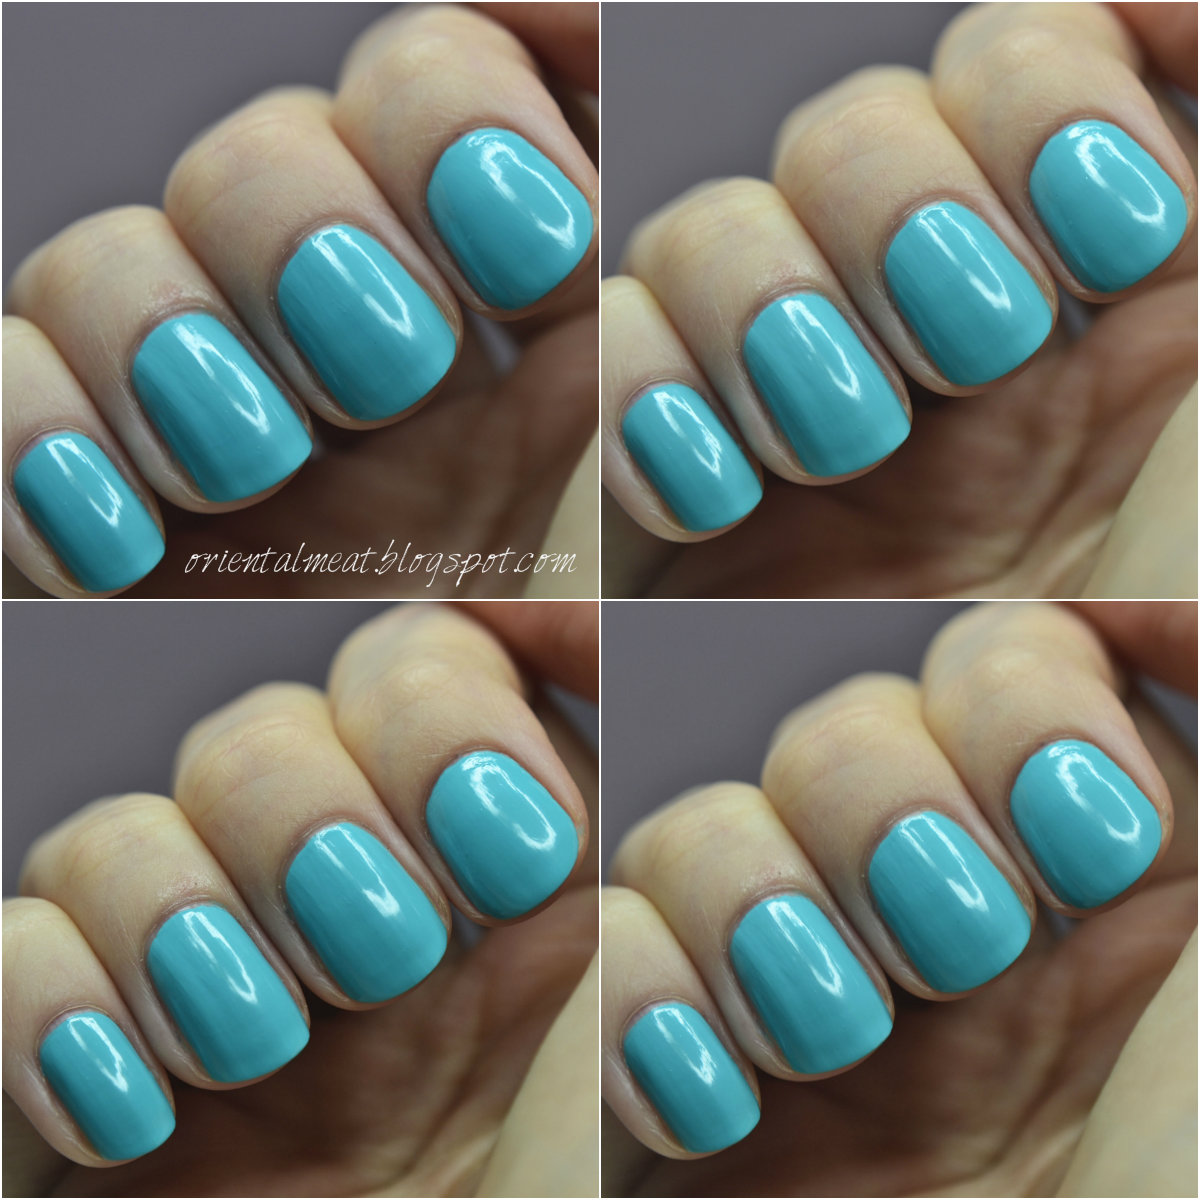 Savina-Mermaid & Color Club-Perl-spective